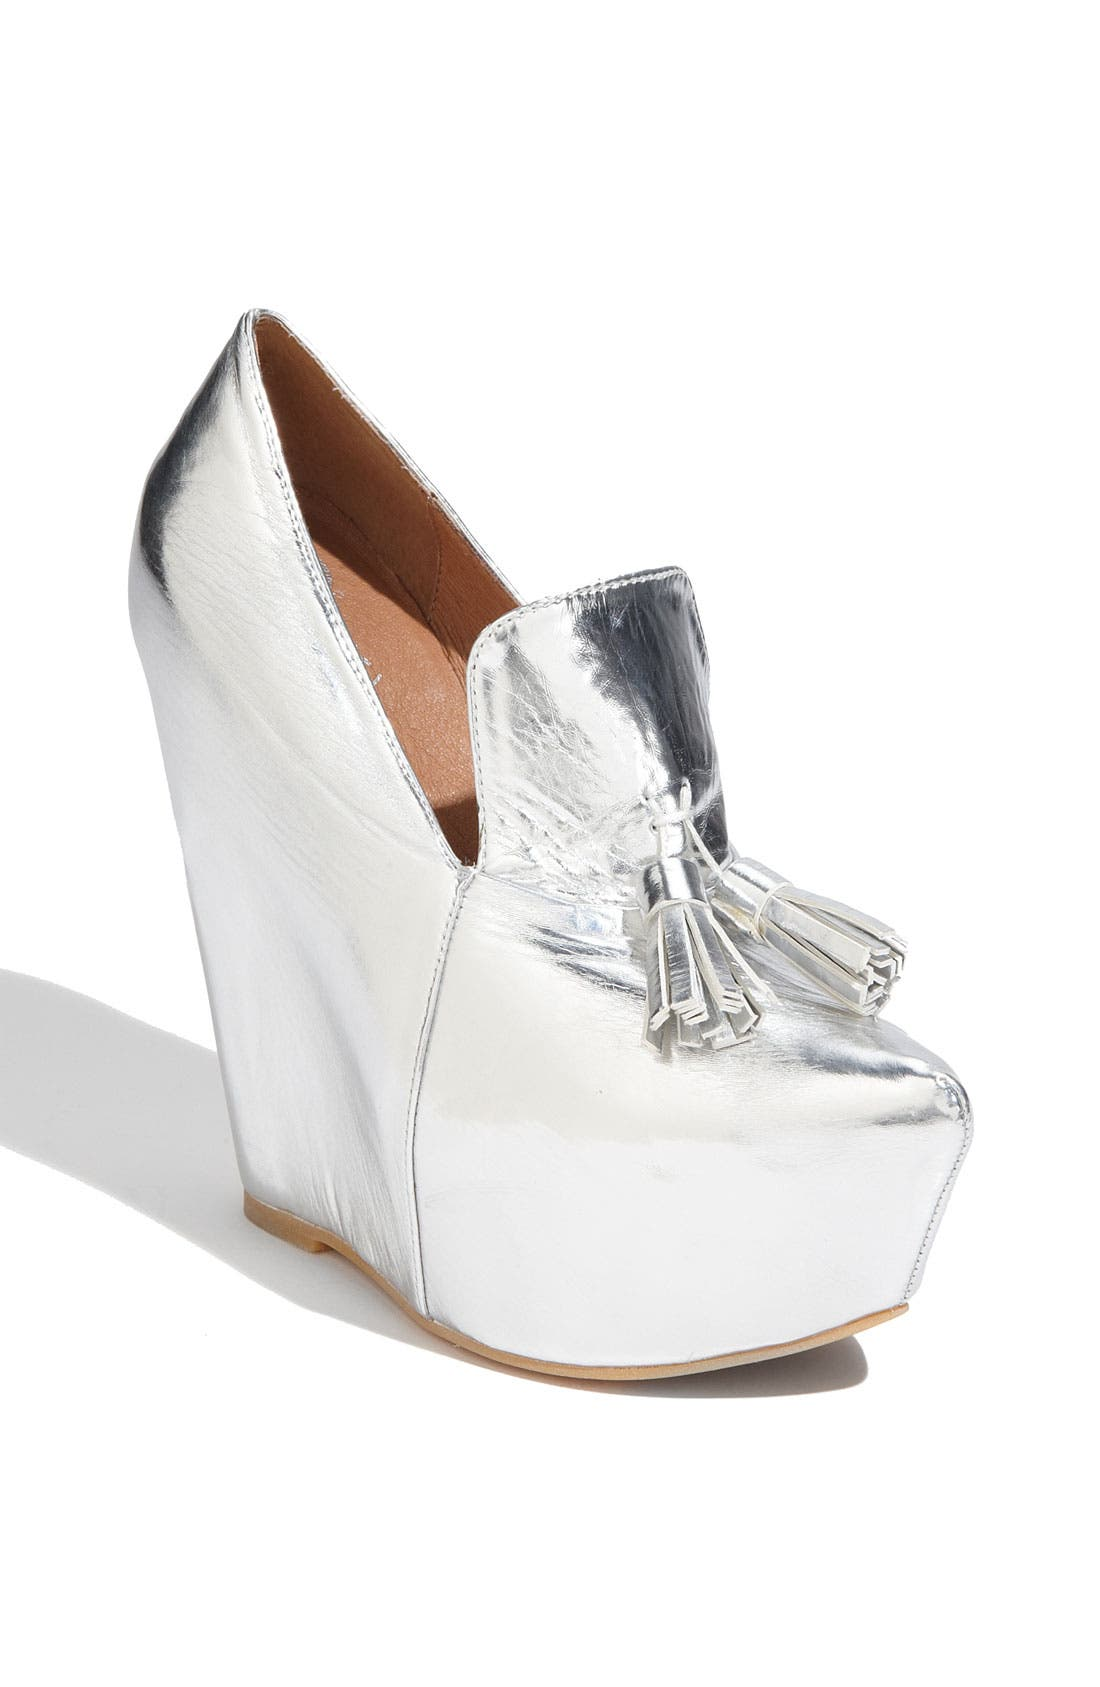 Alternate Image 1 Selected - Jeffrey Campbell 'Zealous' Pump